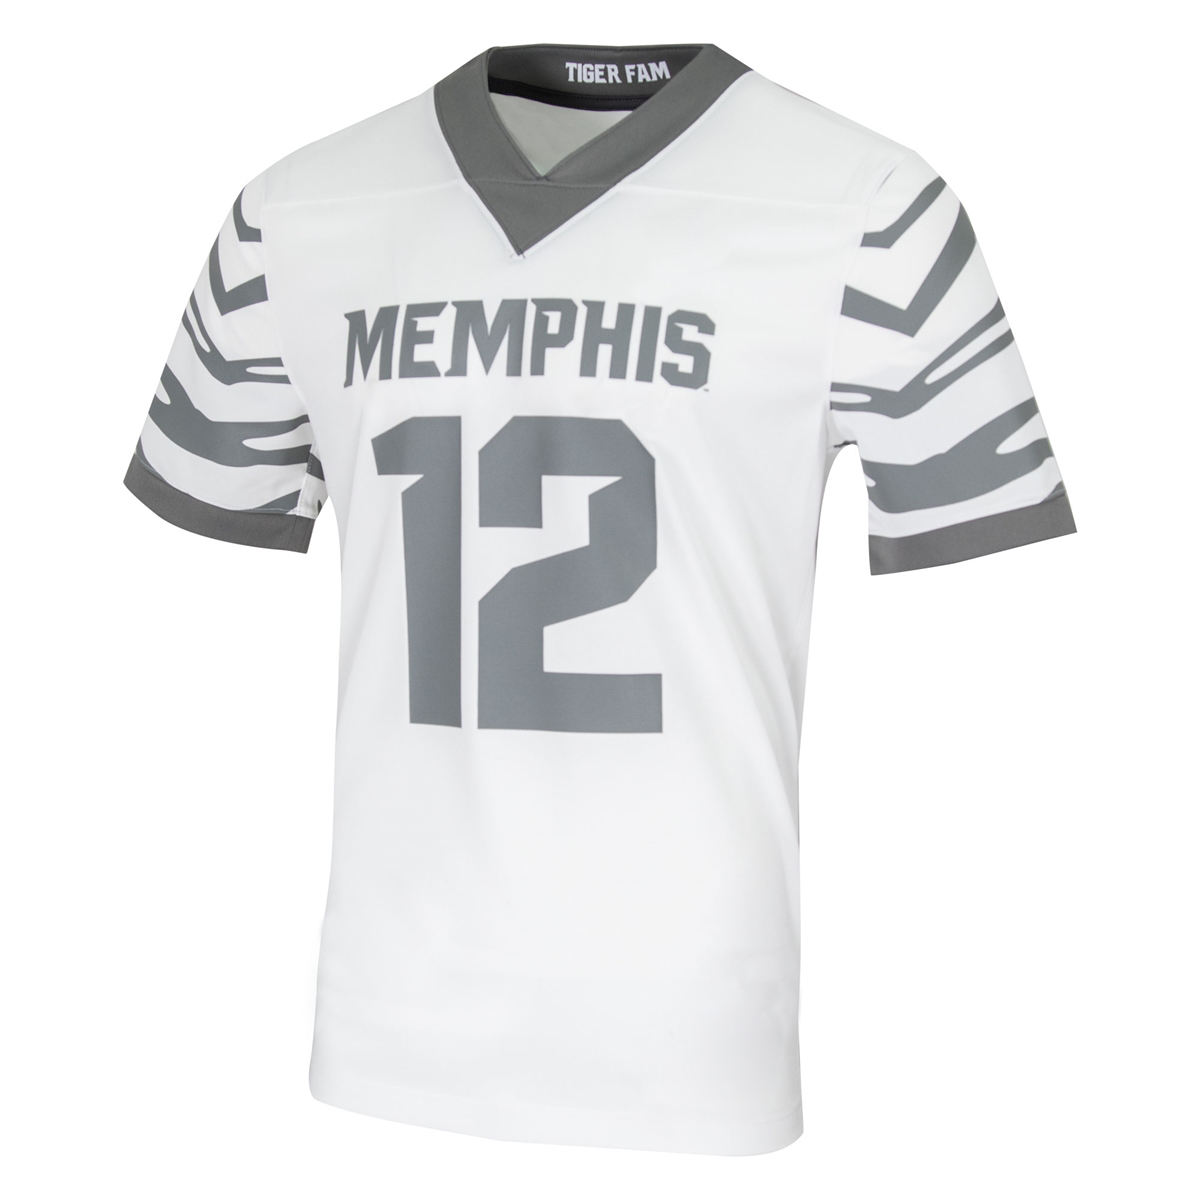 sports jersey design plain football jerseys design football jerseys custom